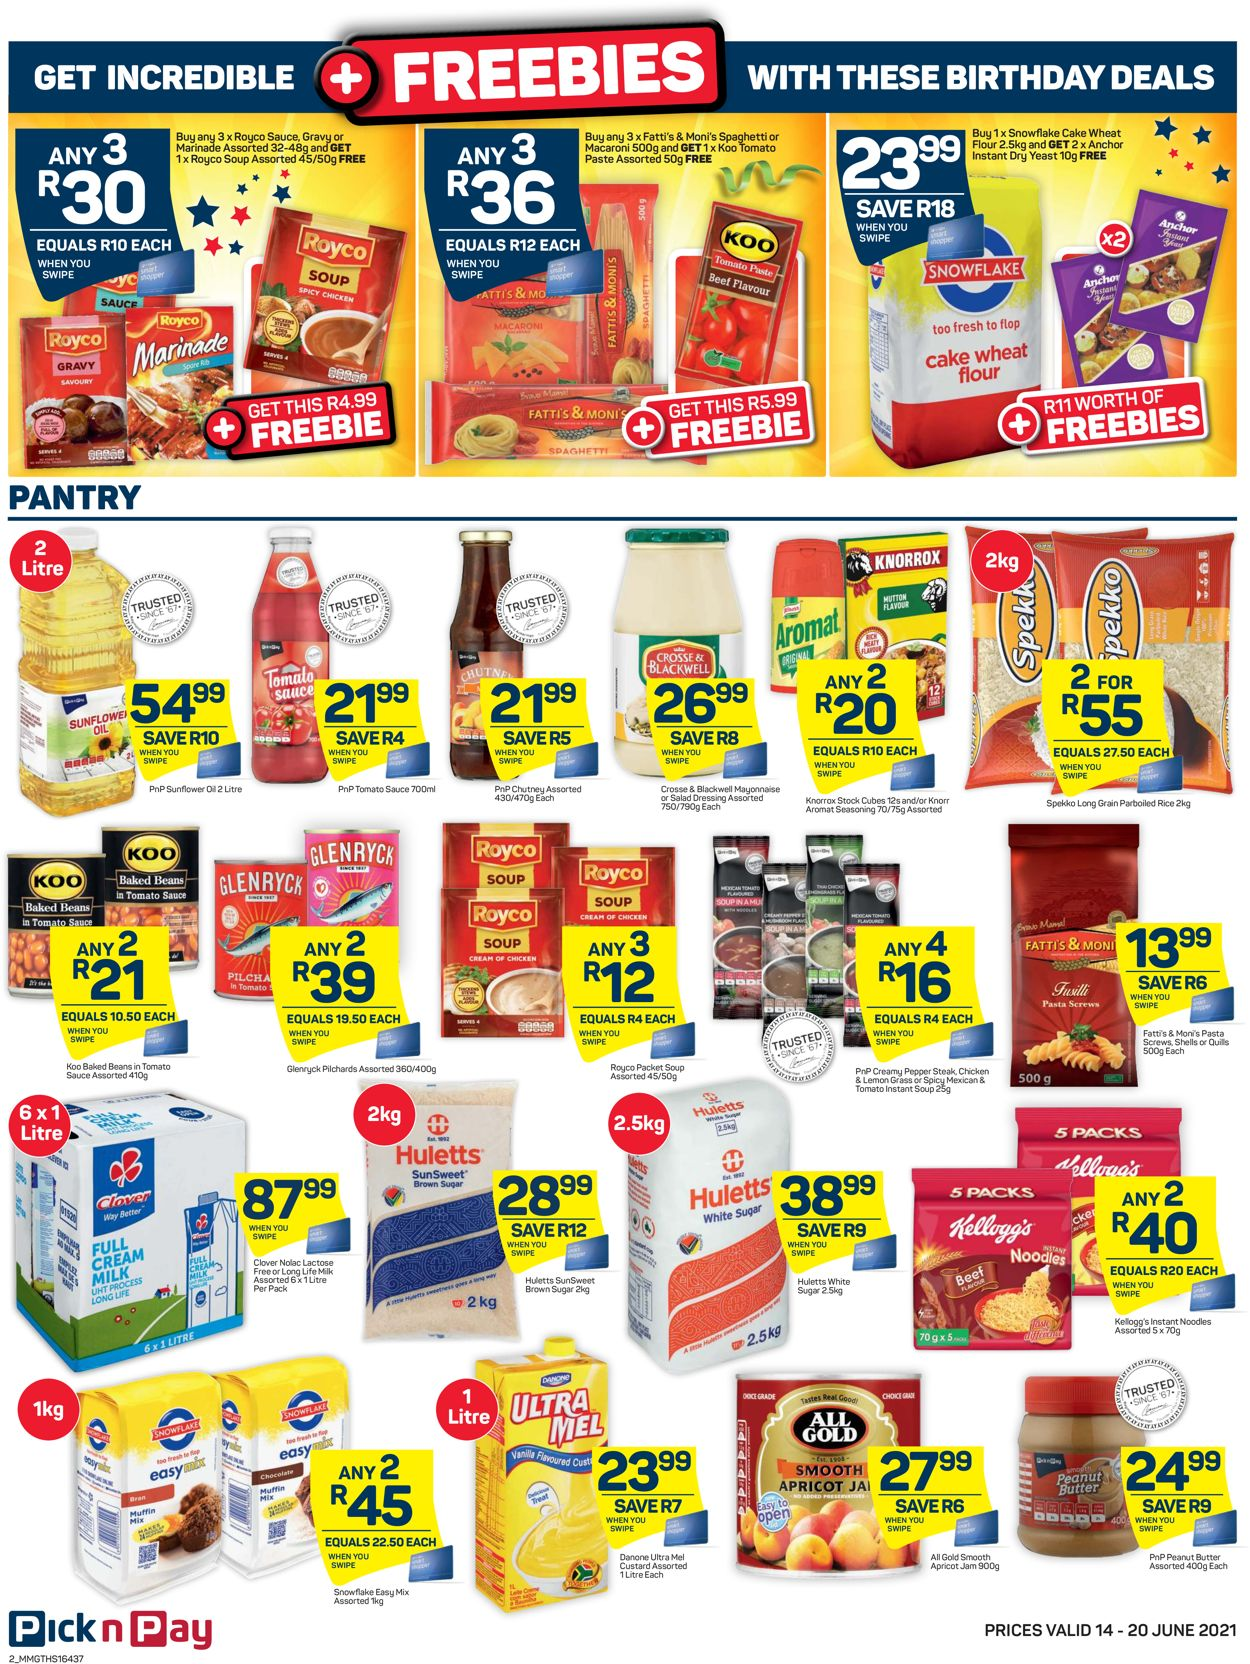 Pick n Pay Catalogue - 2021/06/14-2021/06/20 (Page 2)